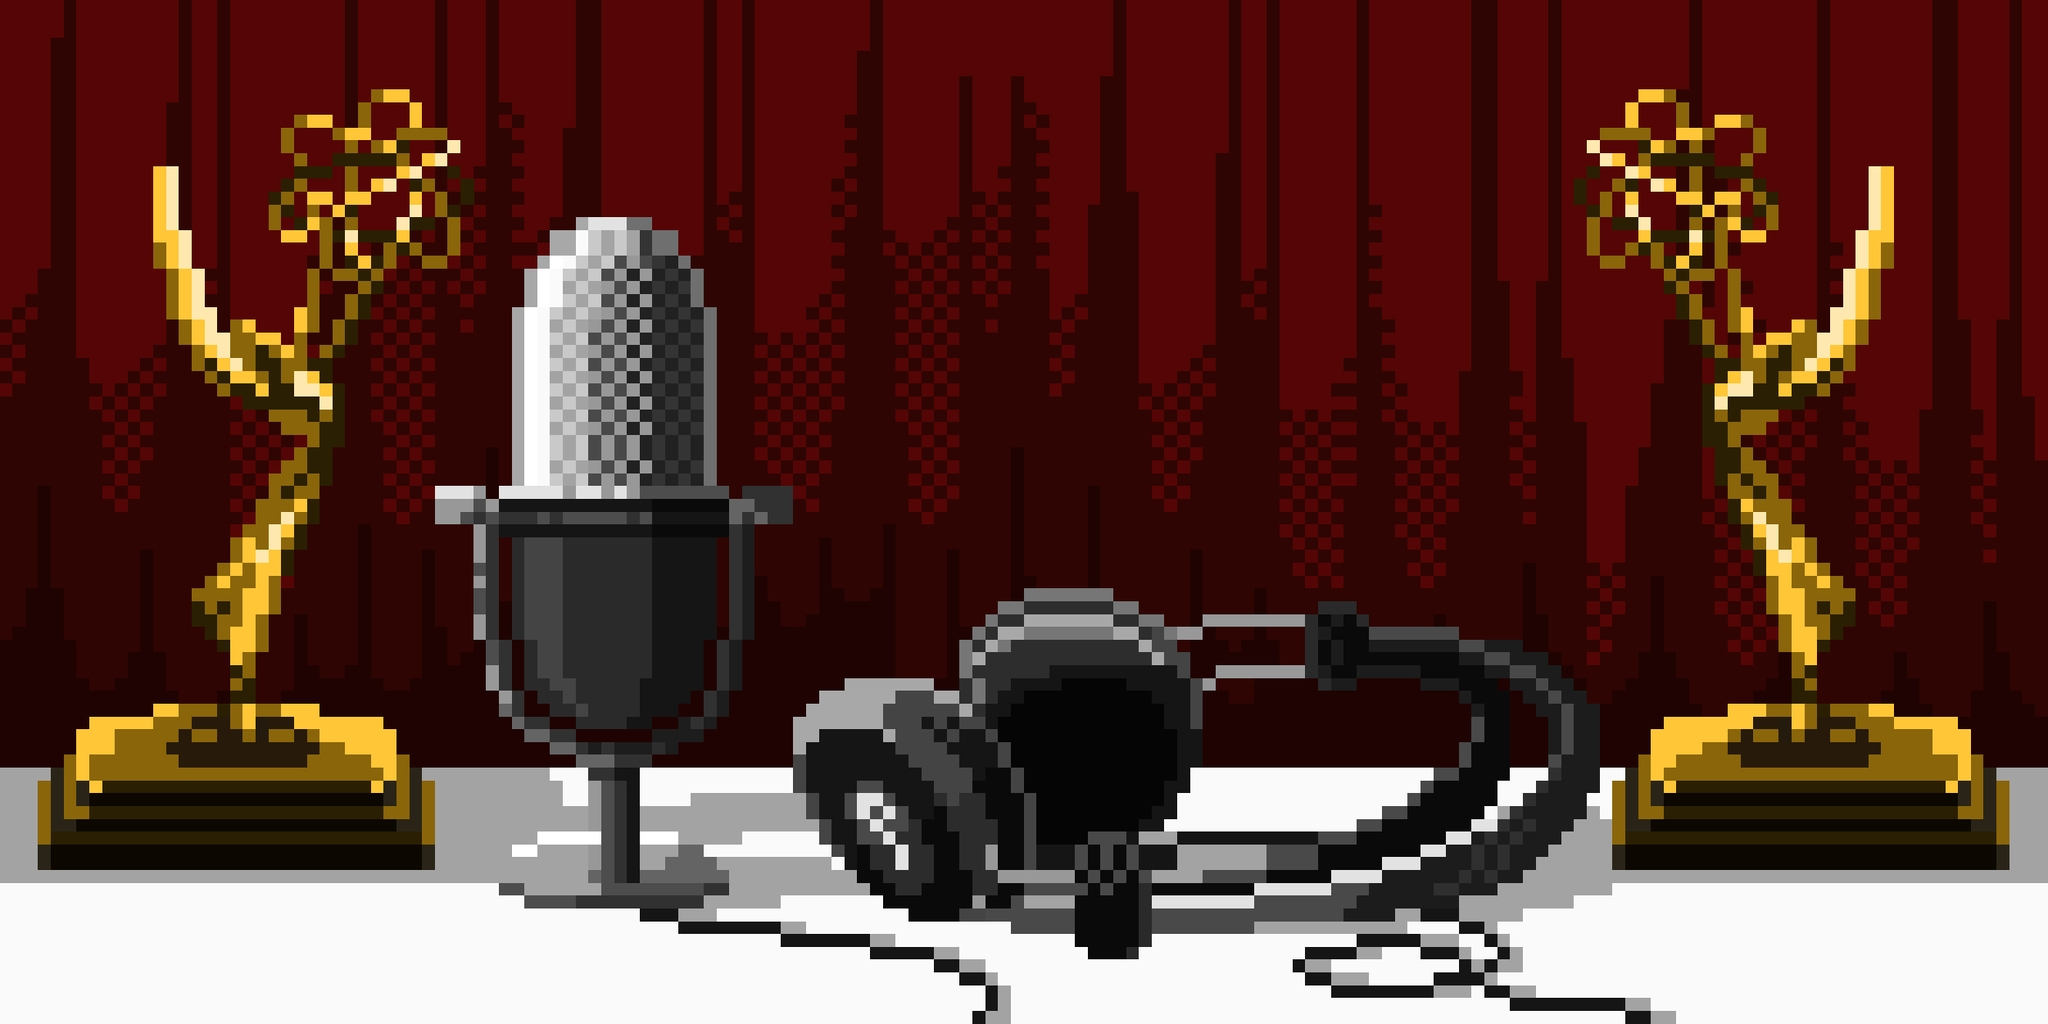 Emmy statues with microphone and headphones